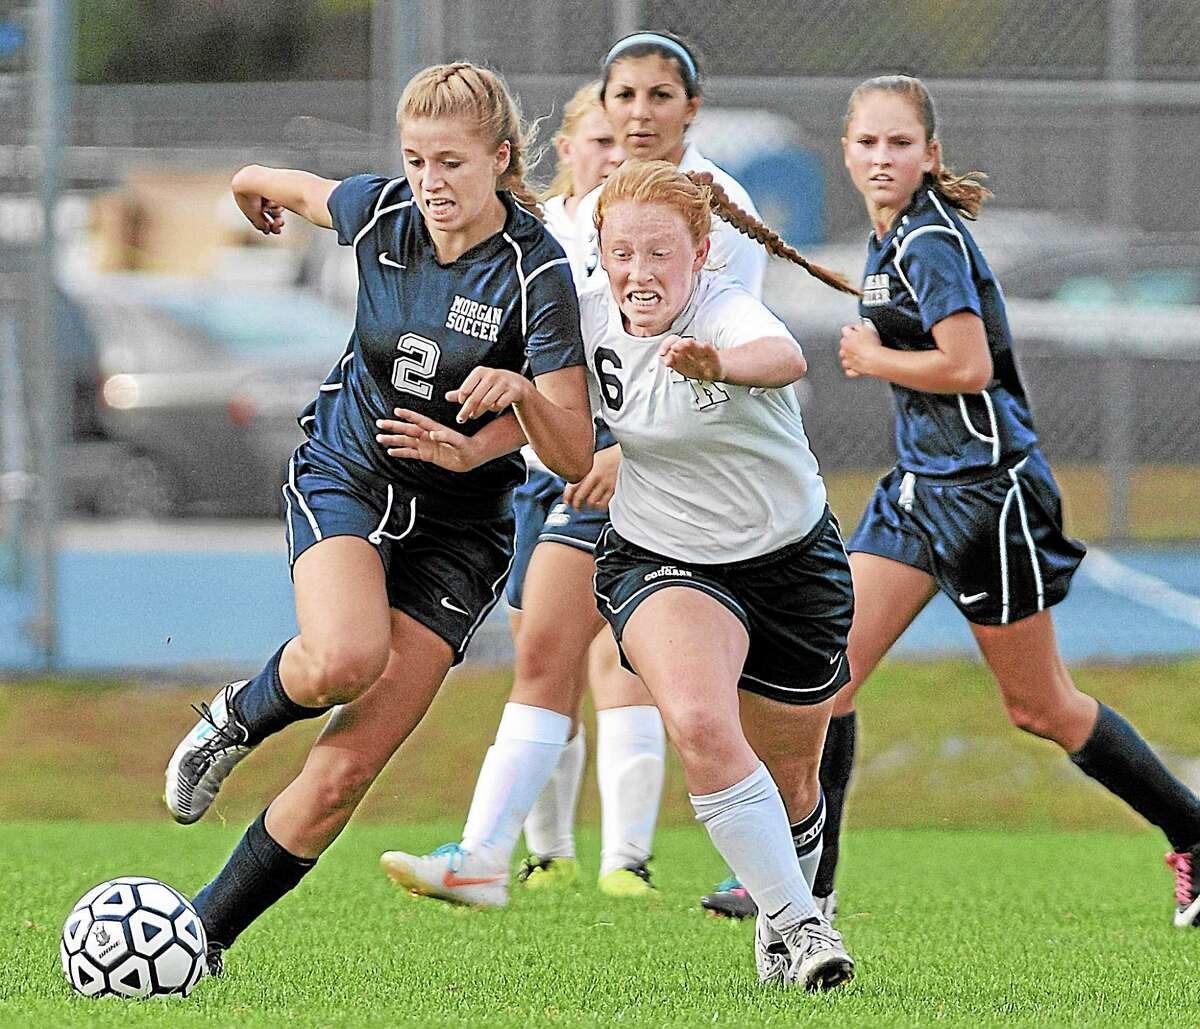 Haddam-Killingworth's Gwen Plum defends Morgan's Riley Thompson in Thursday's Shoreline Conference game in Higganum. The Cougars defeated the Huskies 4-2. All goals were scored in the second half of Thursday's game.